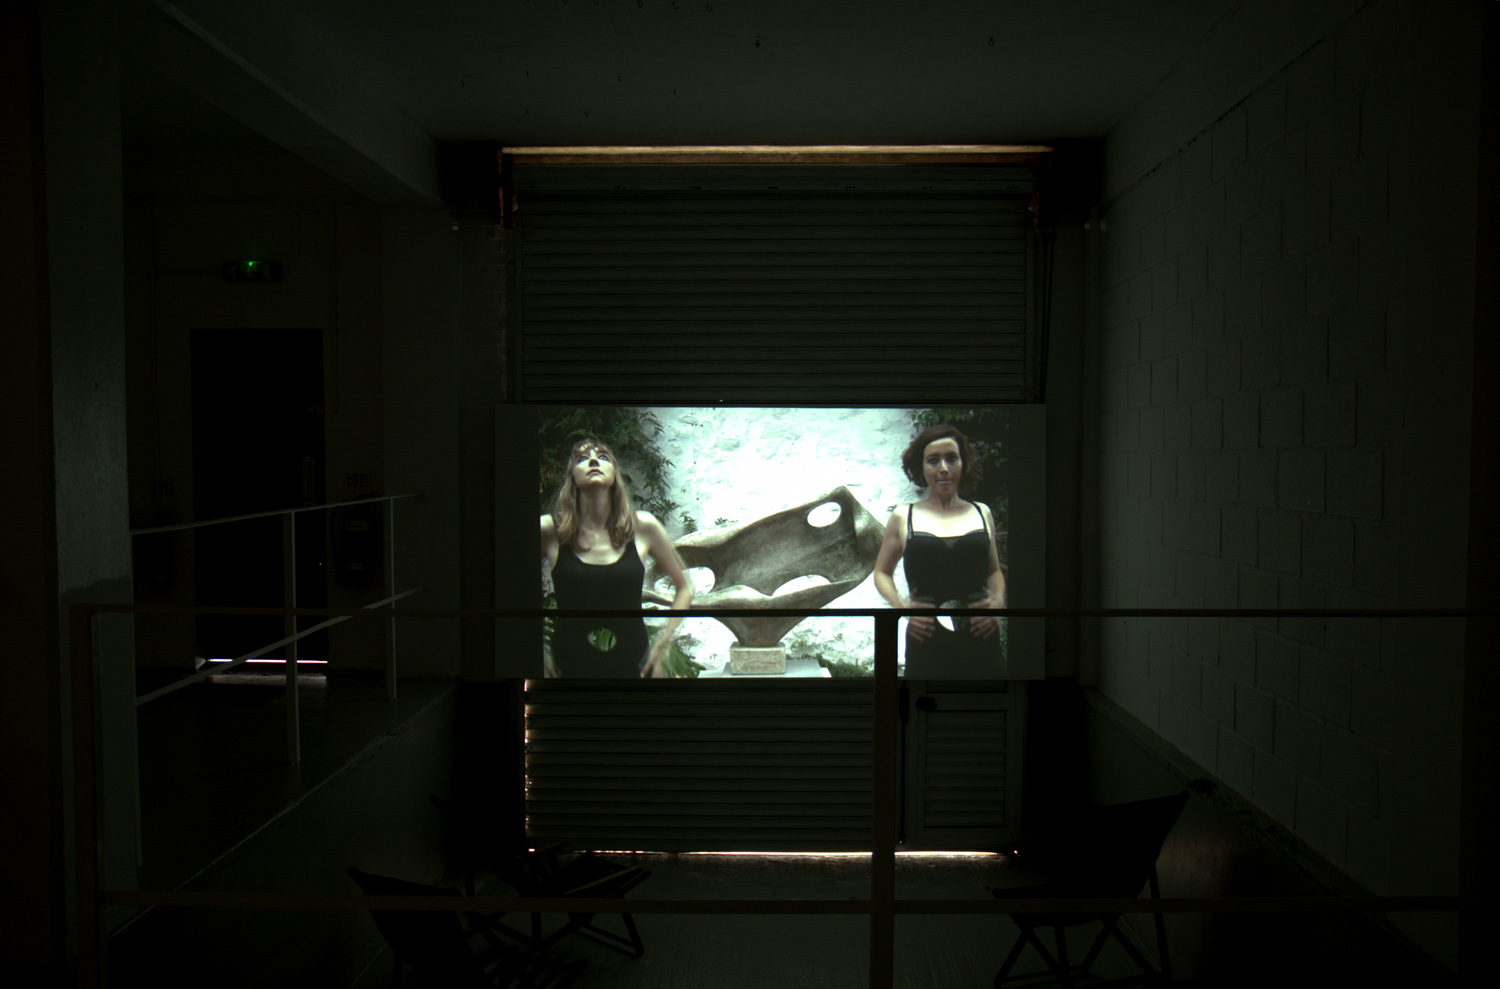 Installation view,[background] Lucy Stein and Shana Moulton, Polventon, 2013, video,10:38 minutes